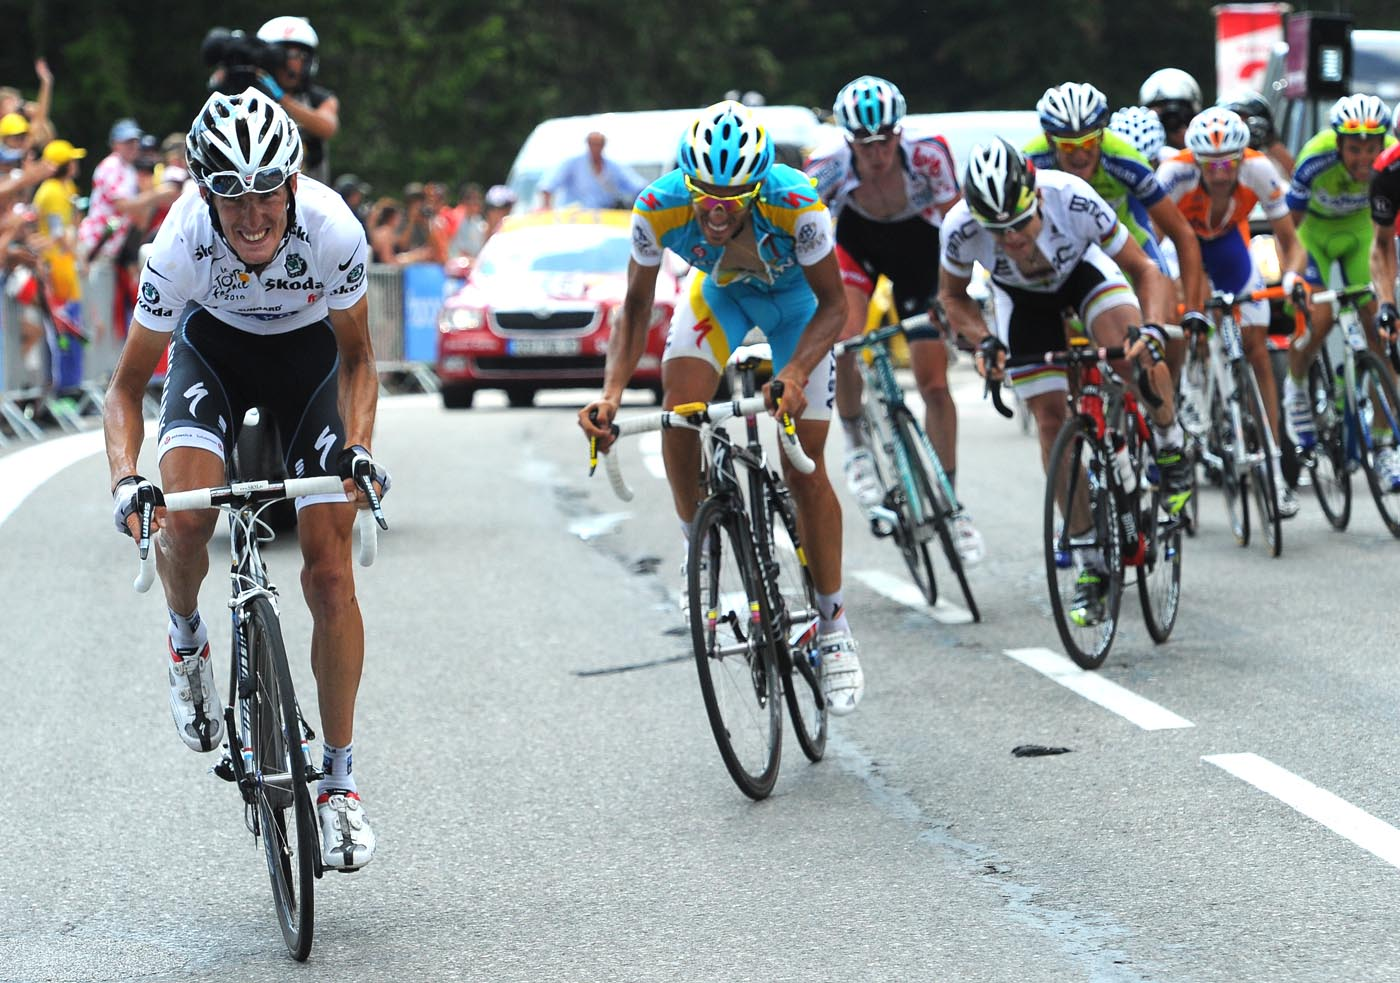 Andy Schleck attacks, Tour de France 2010, stage 8